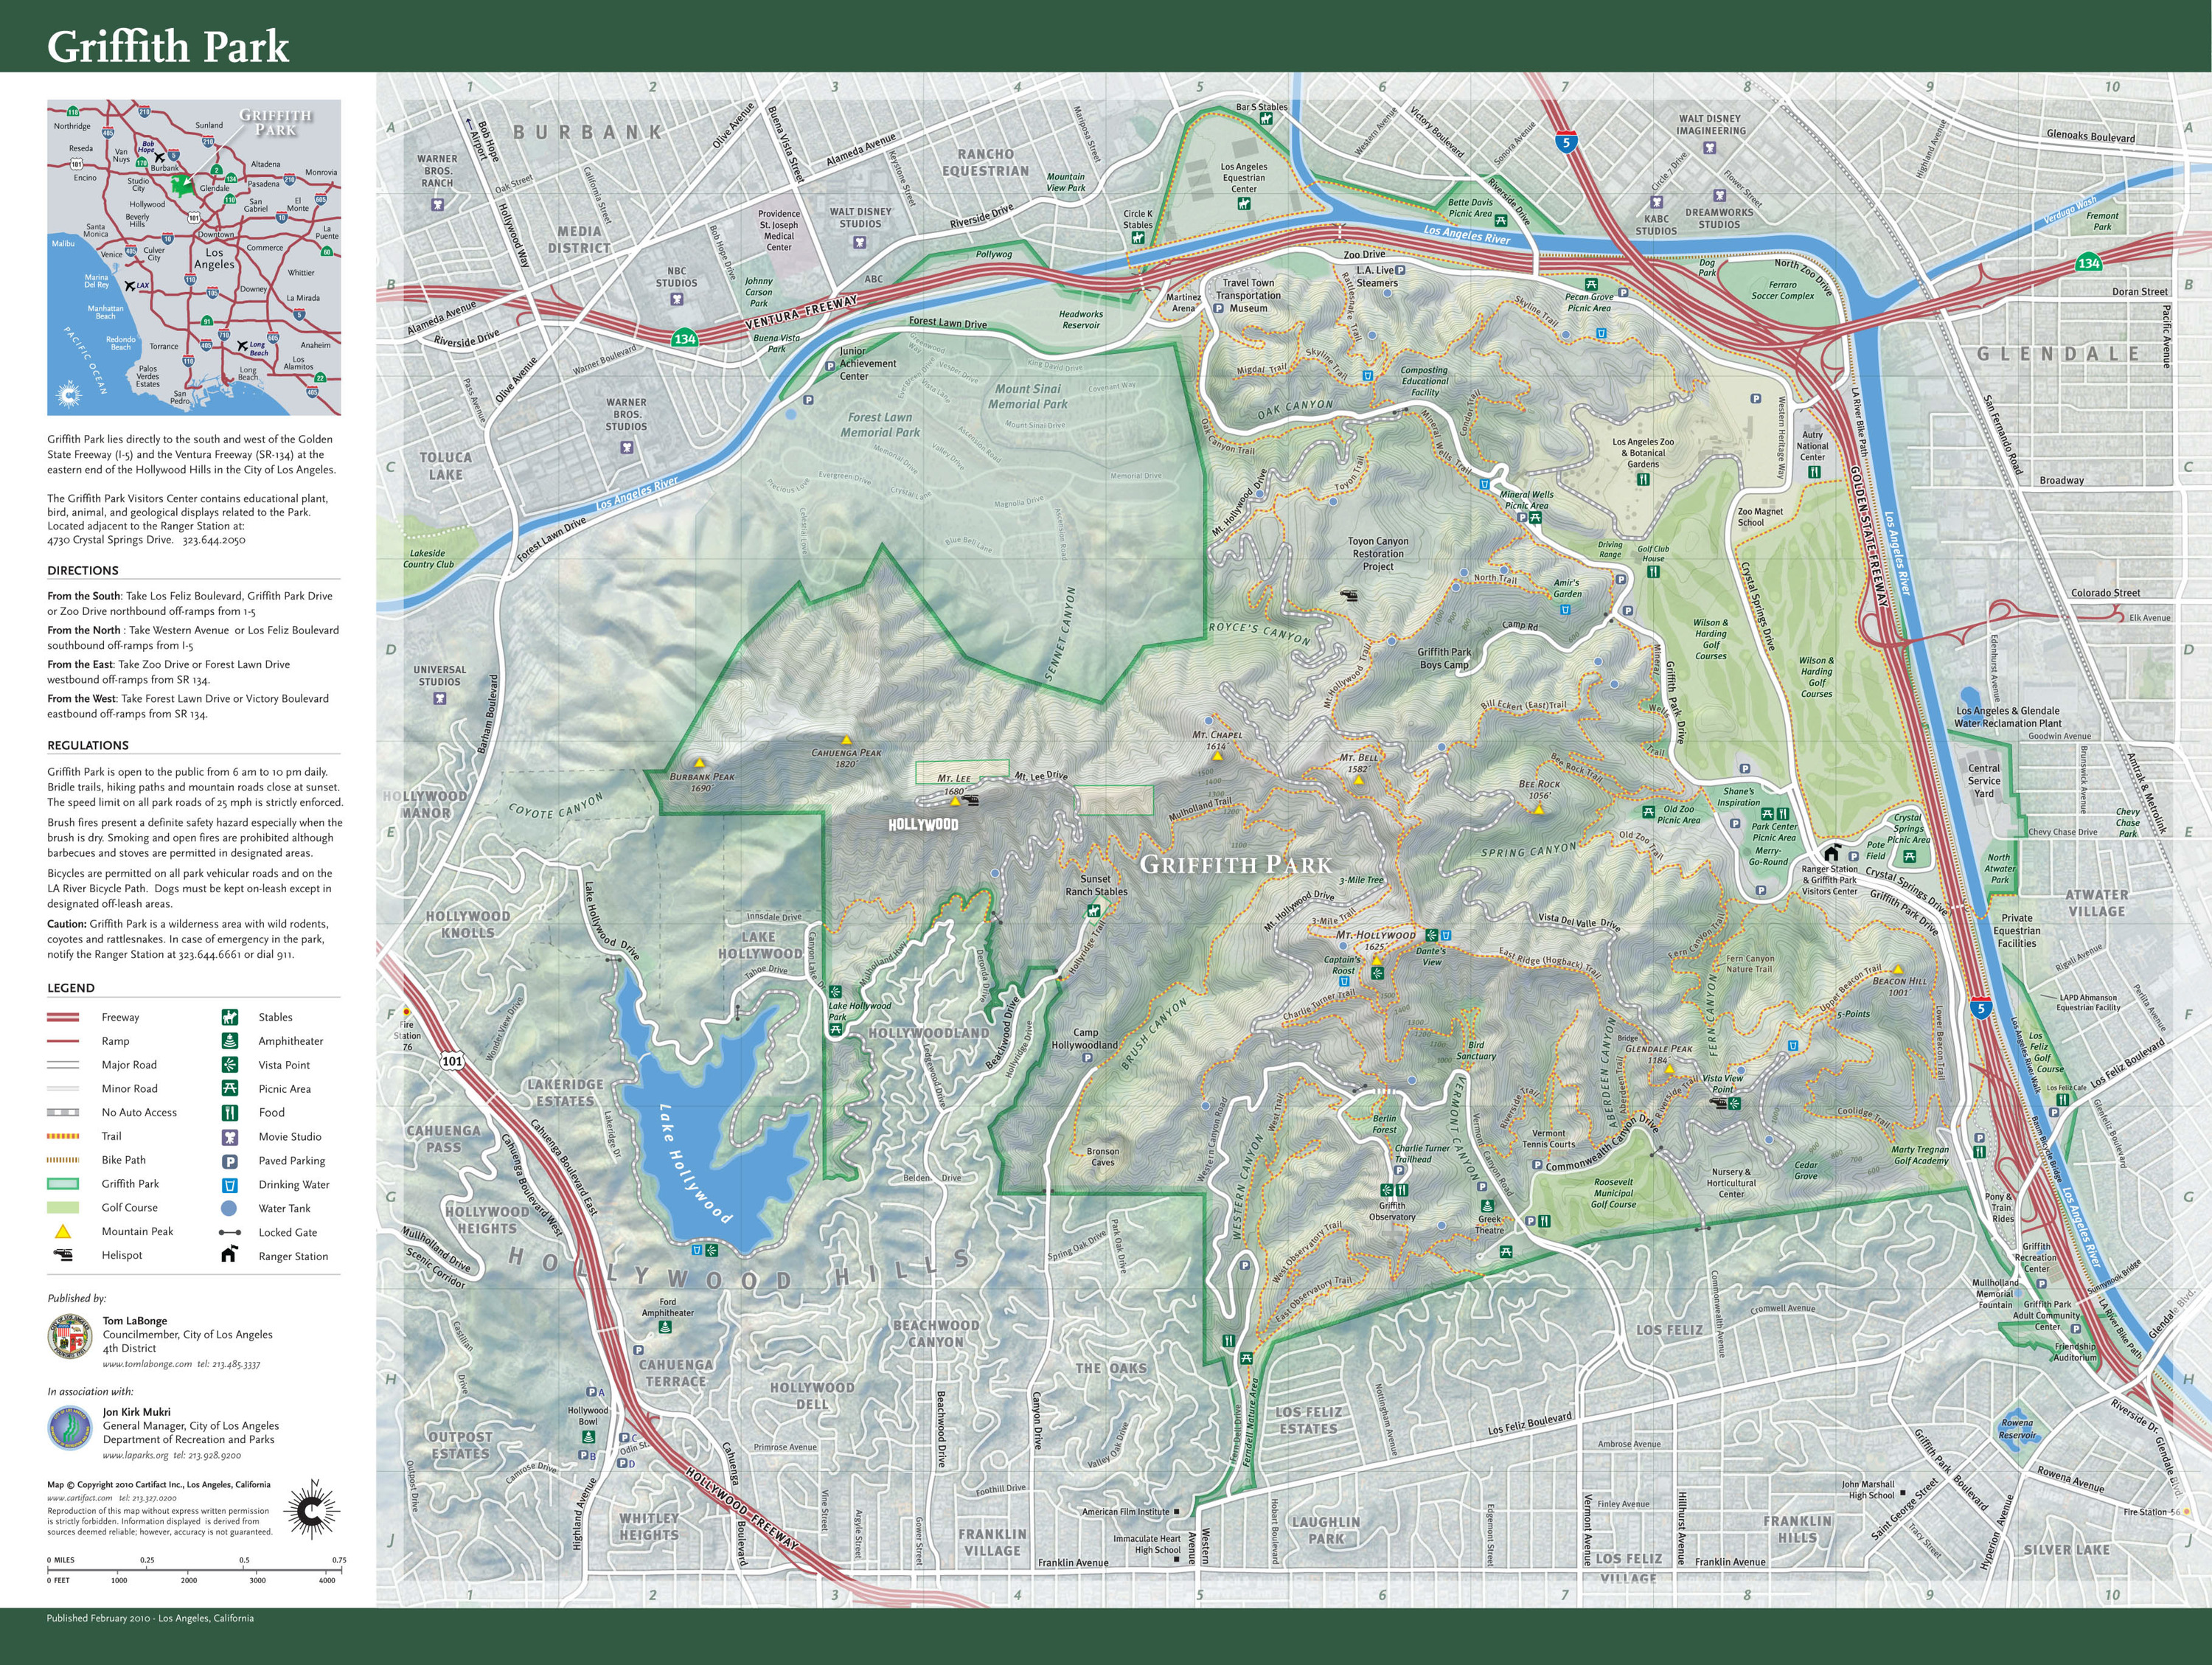 Full Sized Map Available Here